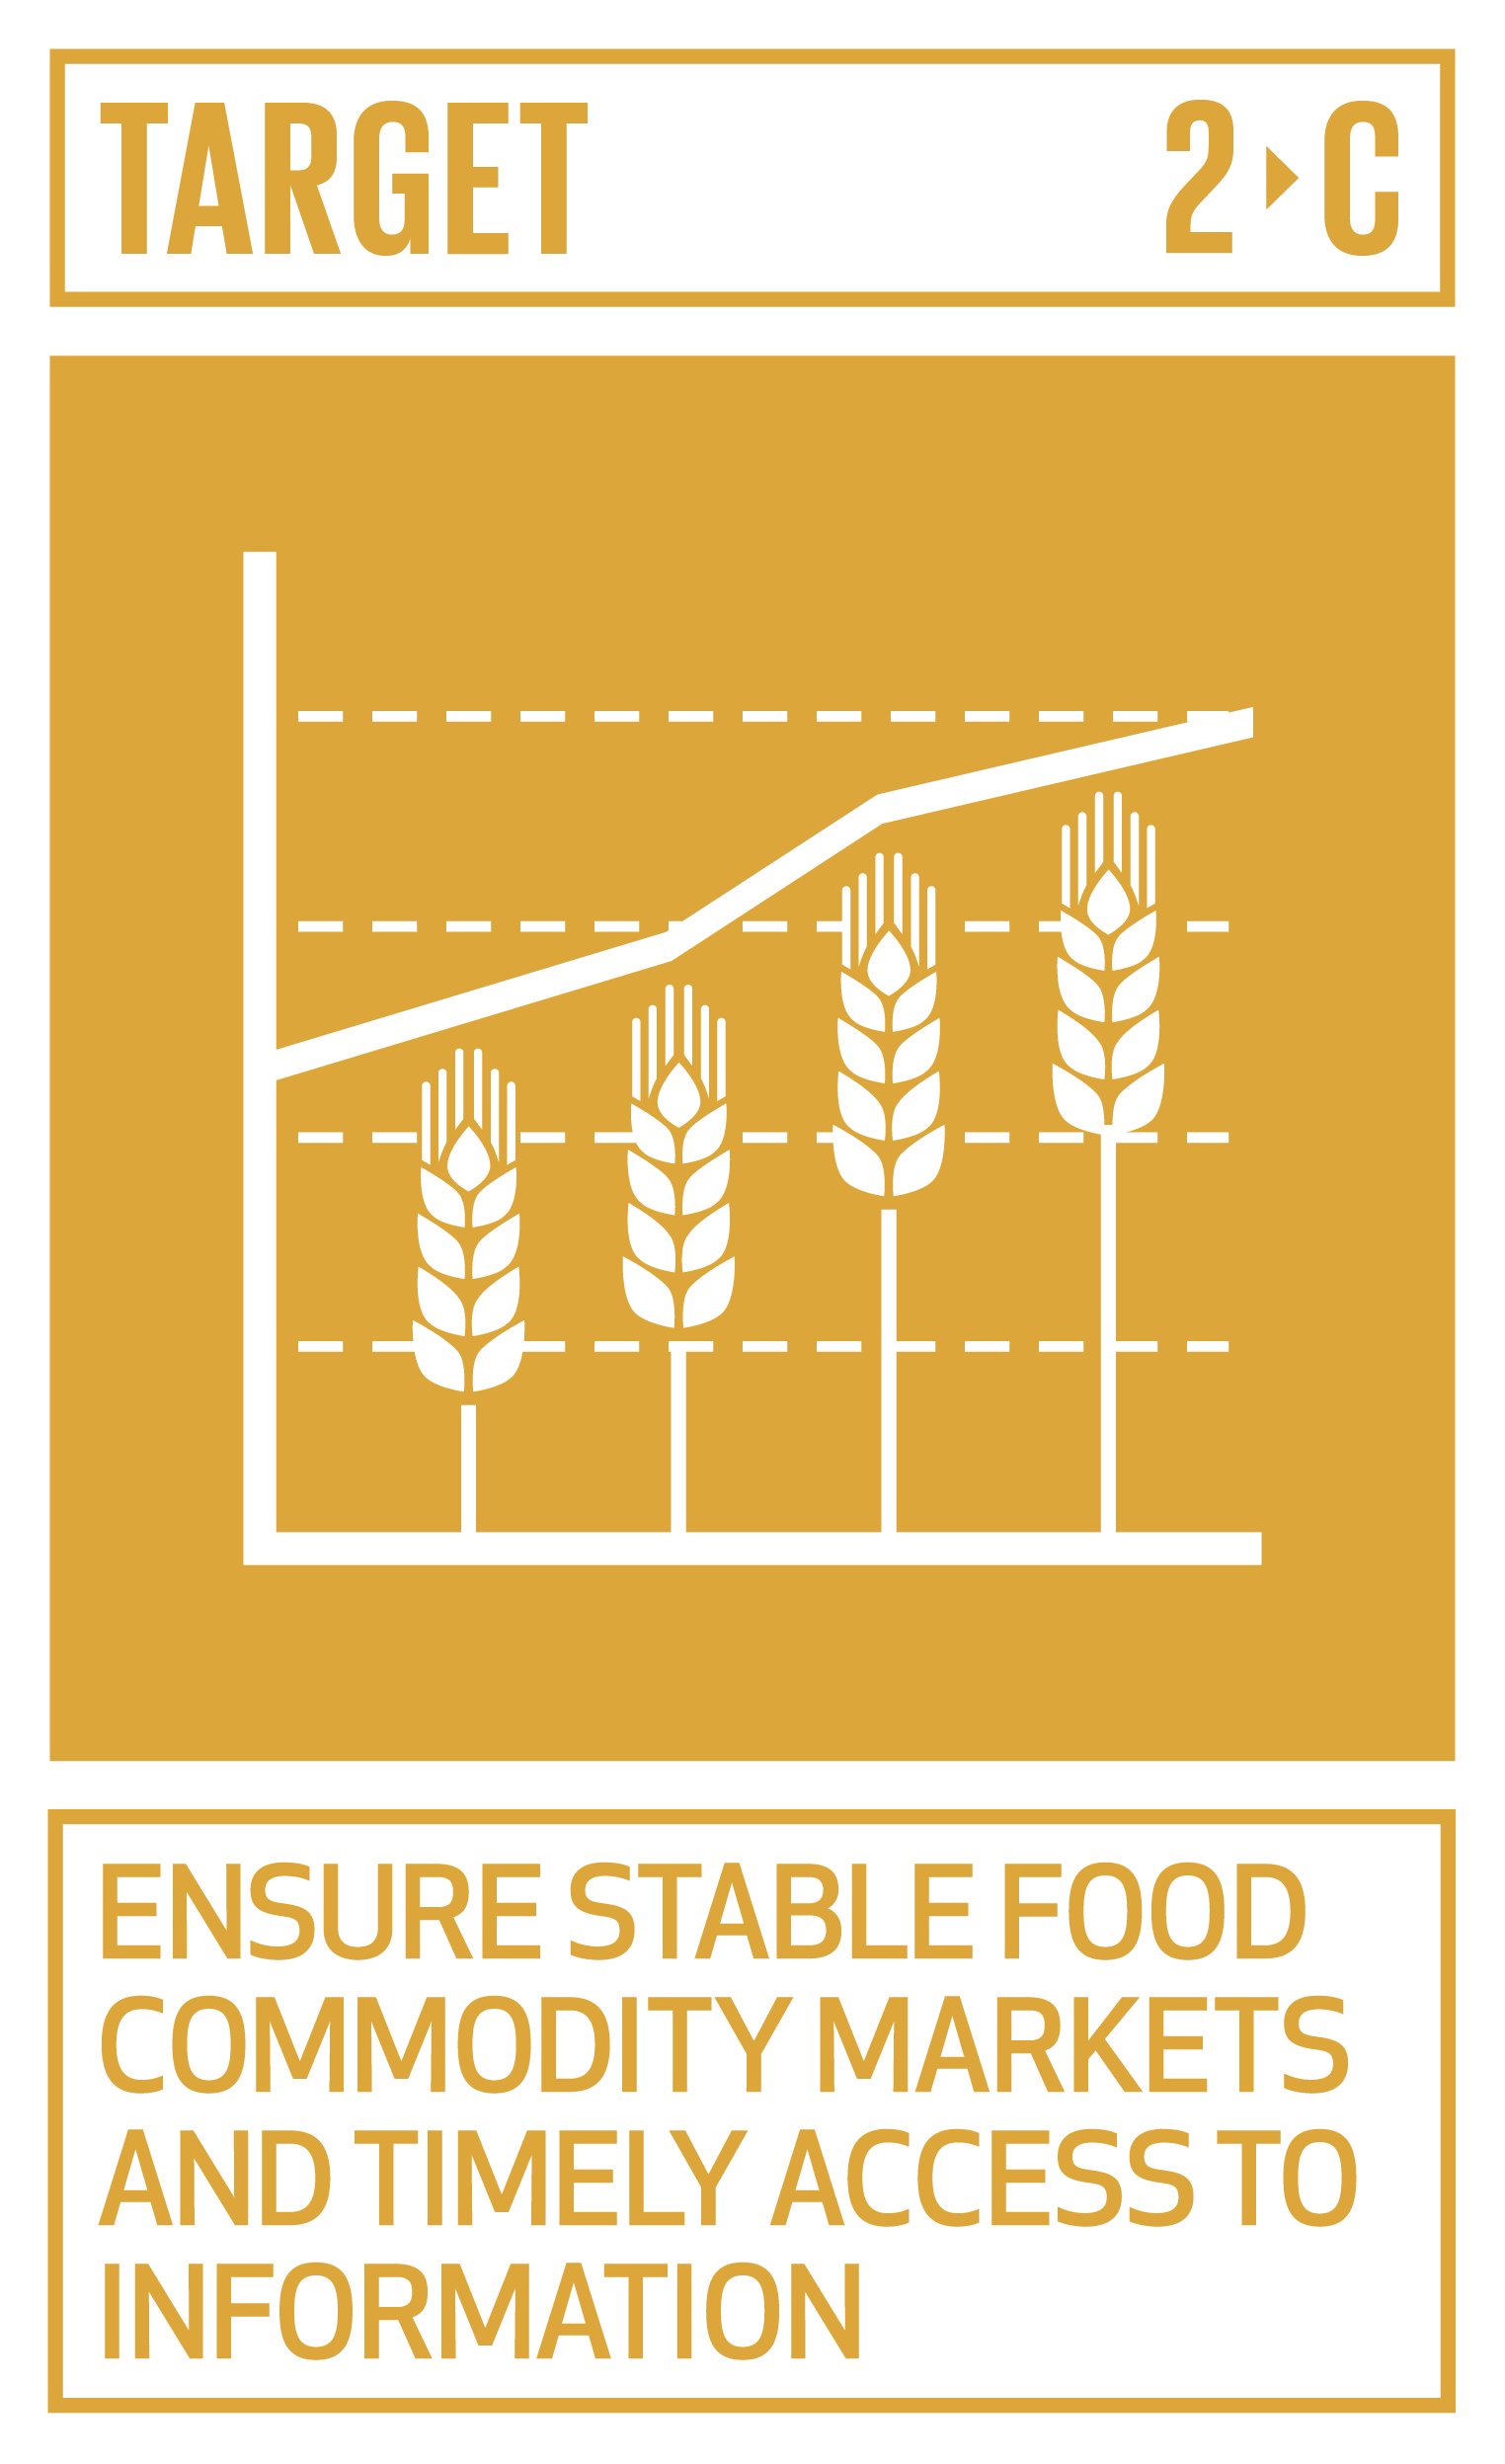 Adopt measures to ensure the proper functioning of food commodity markets and their derivatives and facilitate timely access to market information, including on food reserves, in order to help limit extreme food price volatility.   INDICATOR    2.c.1  Indicator of food price anomalies